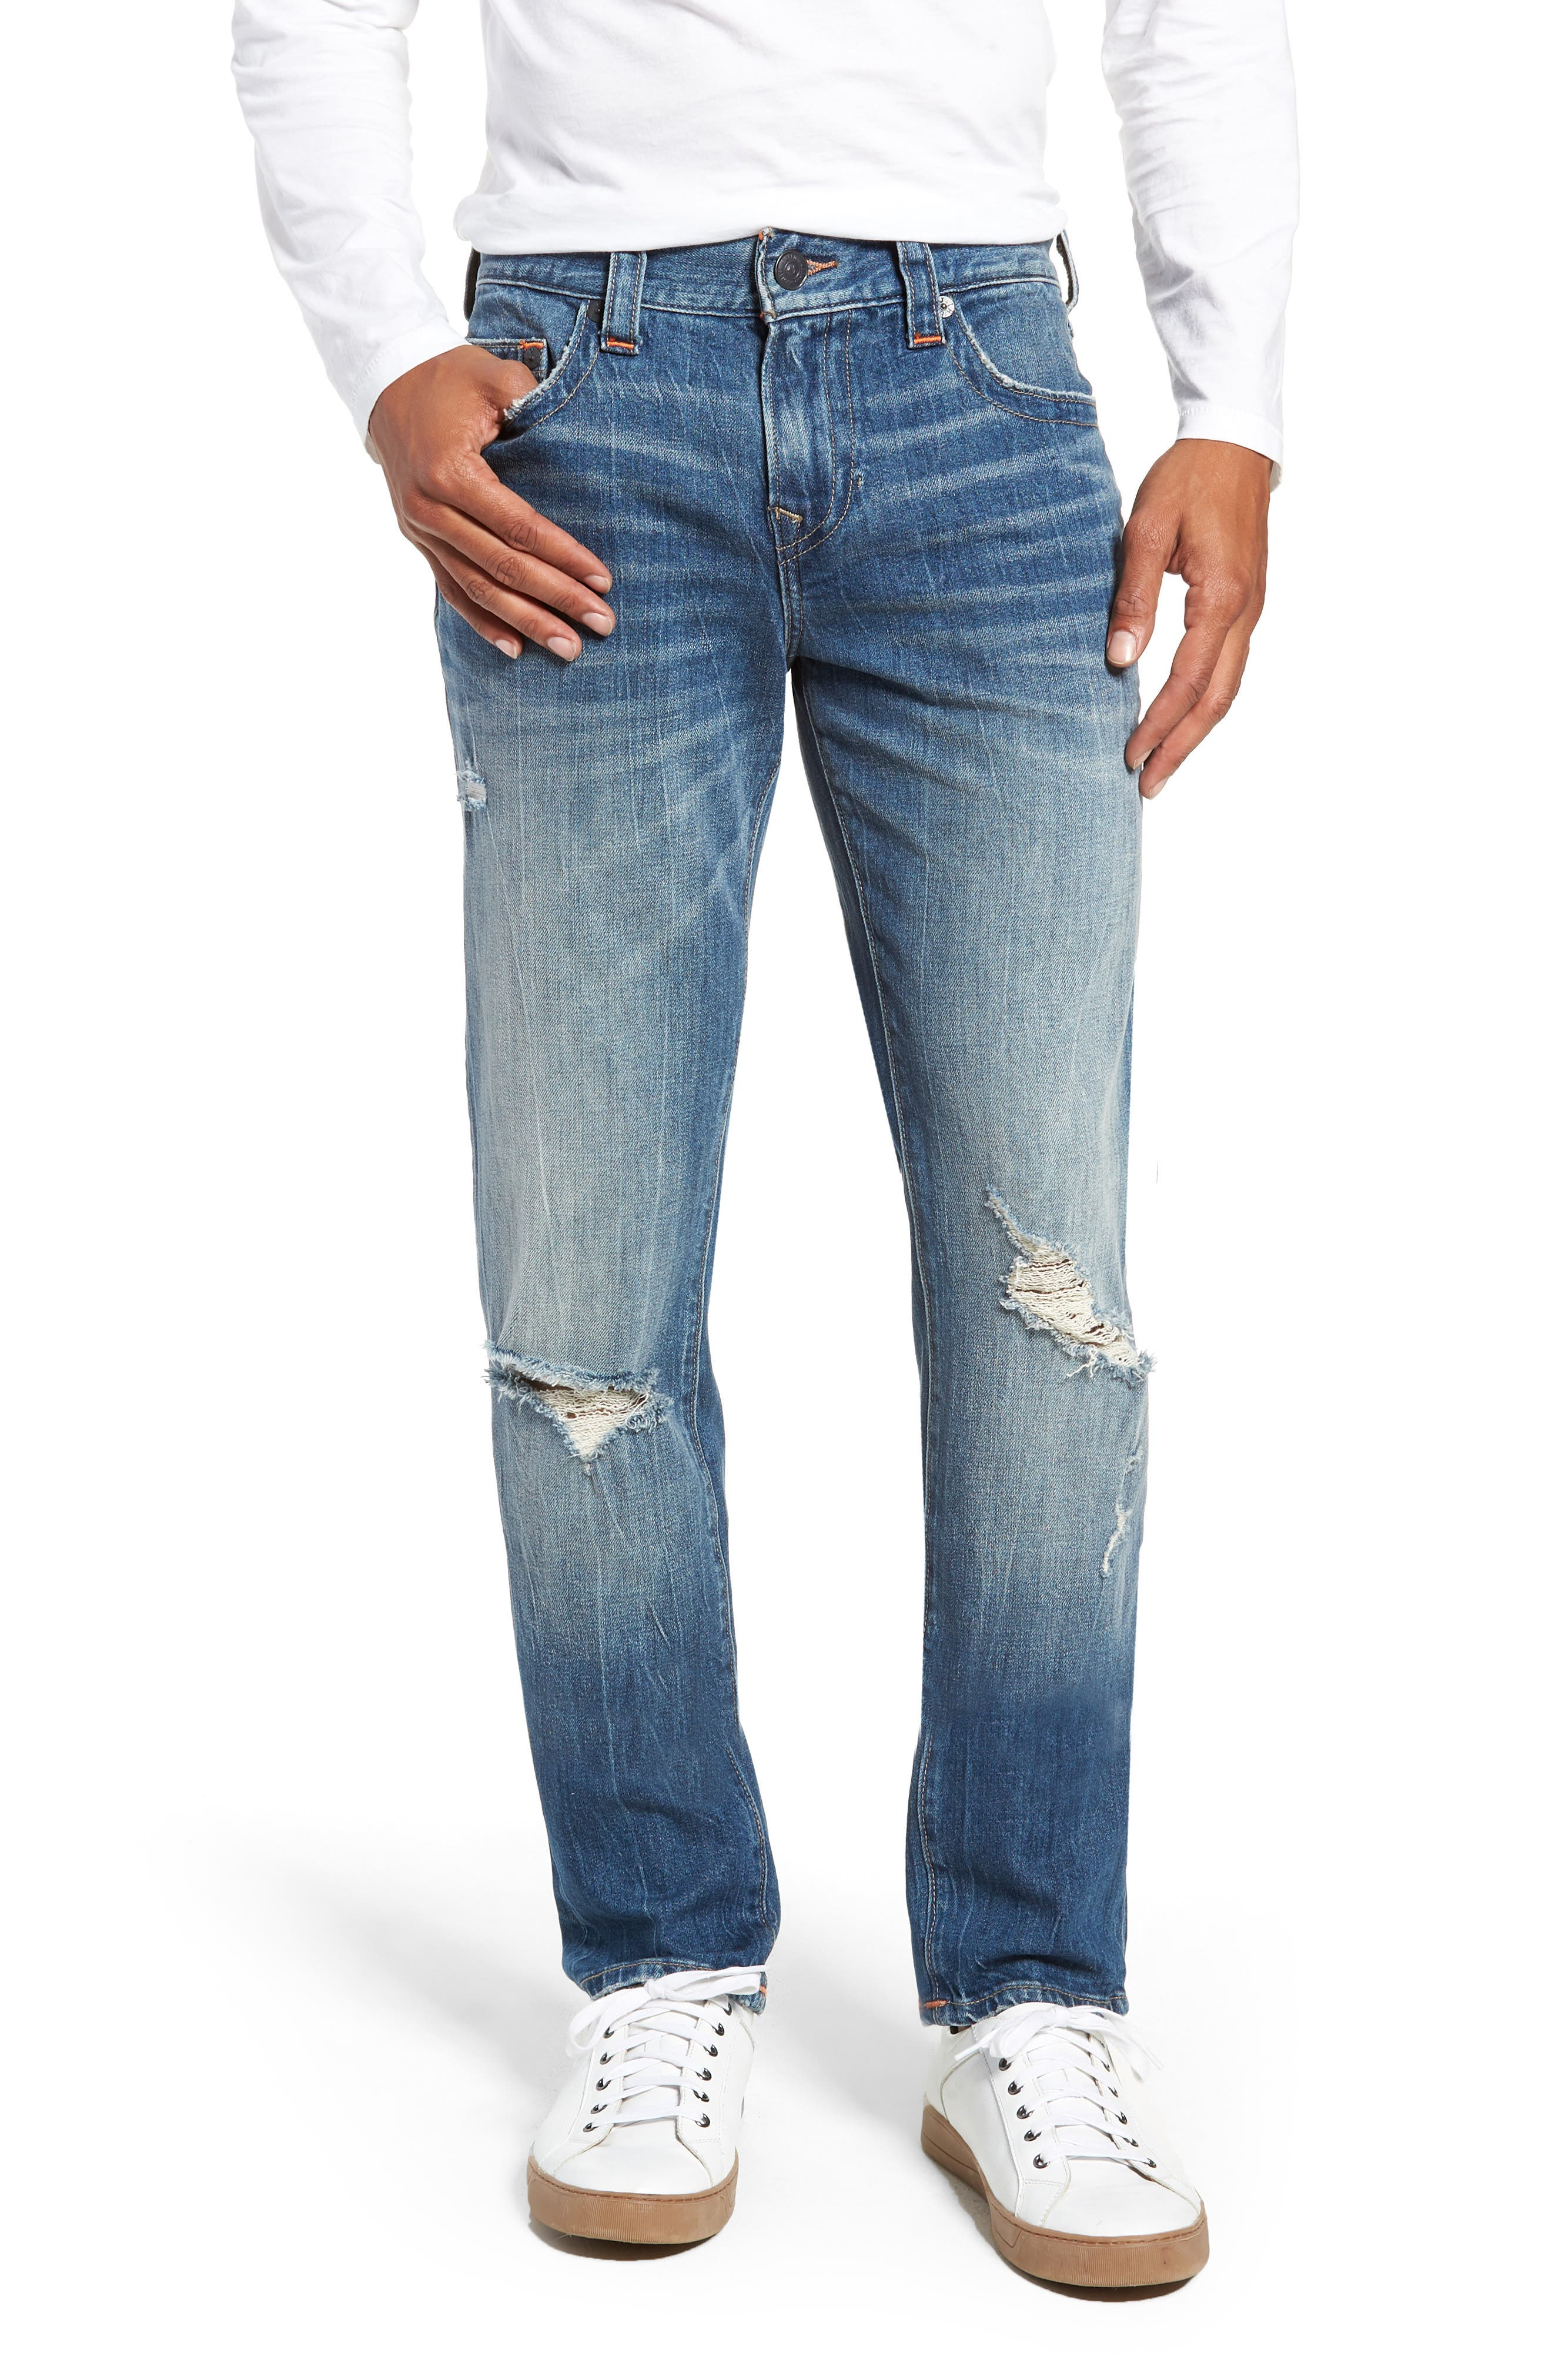 Rocco Skinny Fit Jeans,                             Main thumbnail 1, color,                             WORN RAMPAGE